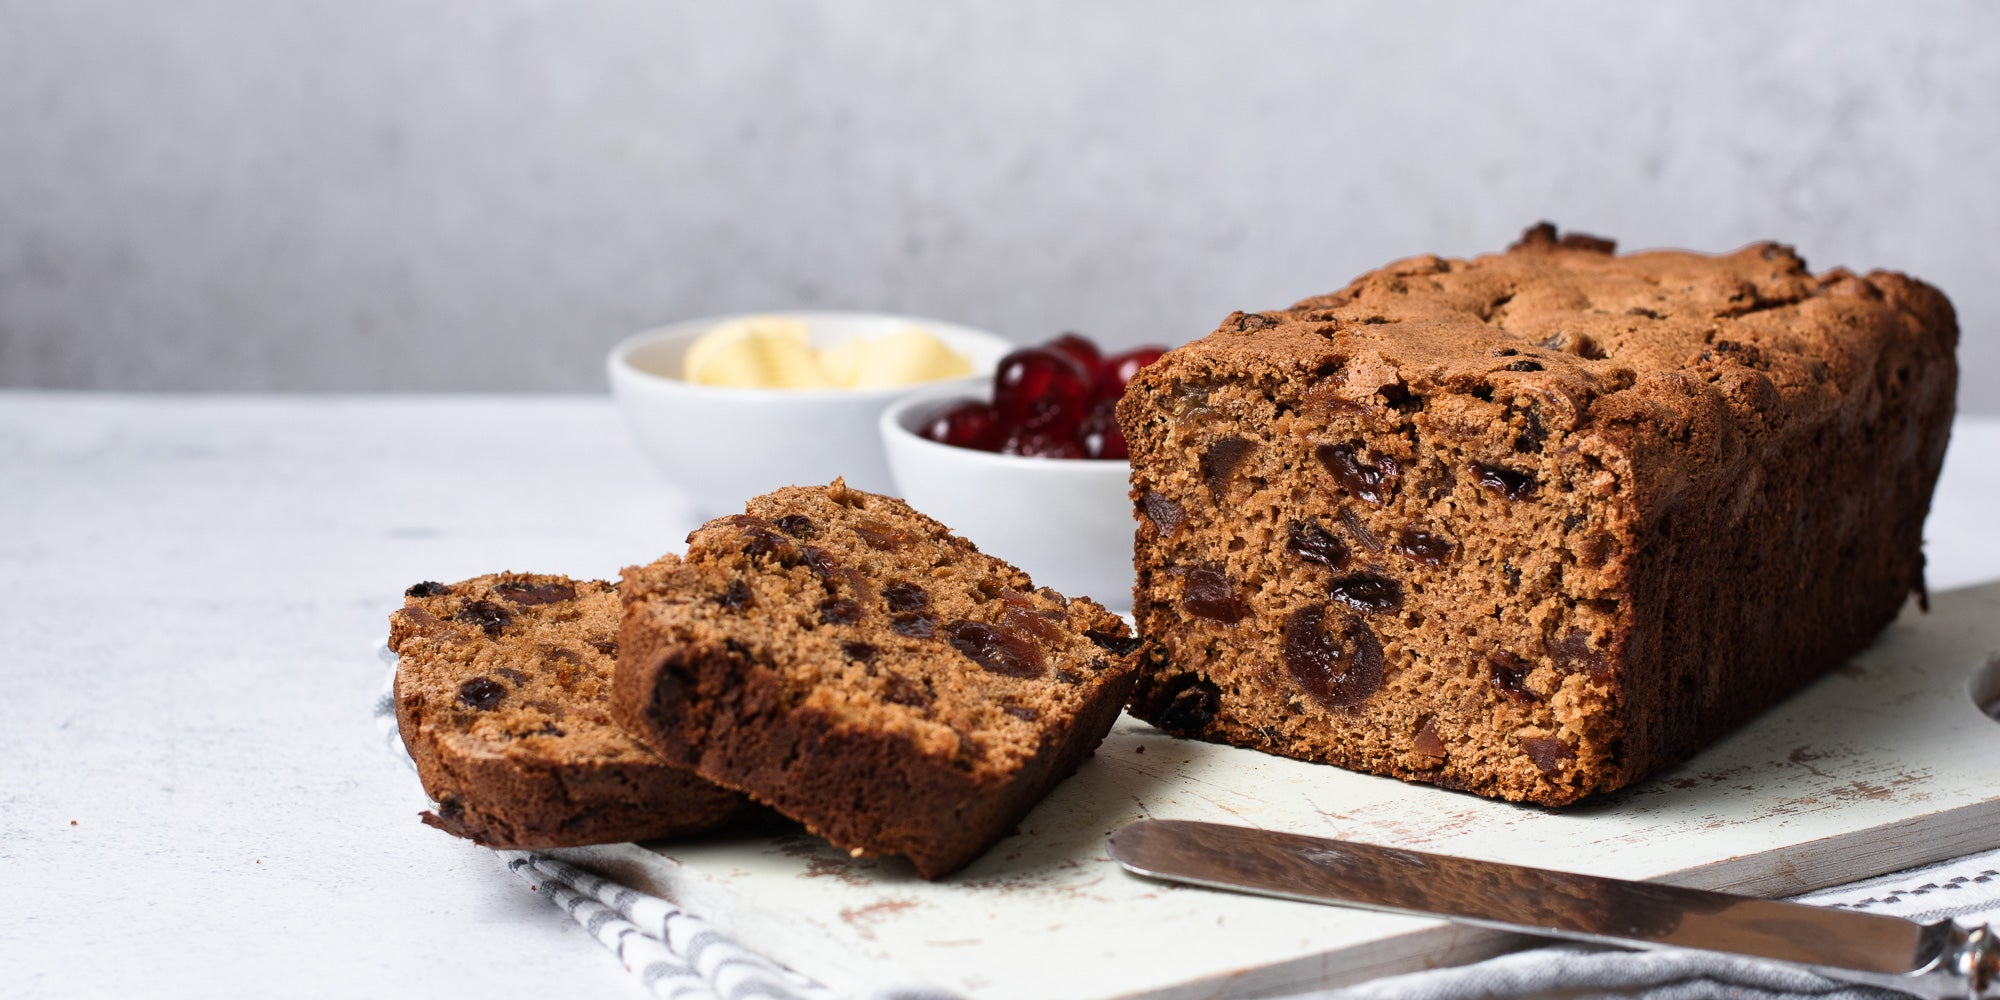 Irish tea loaf with two slices infront and pots of butter and cherries. Knife in shot